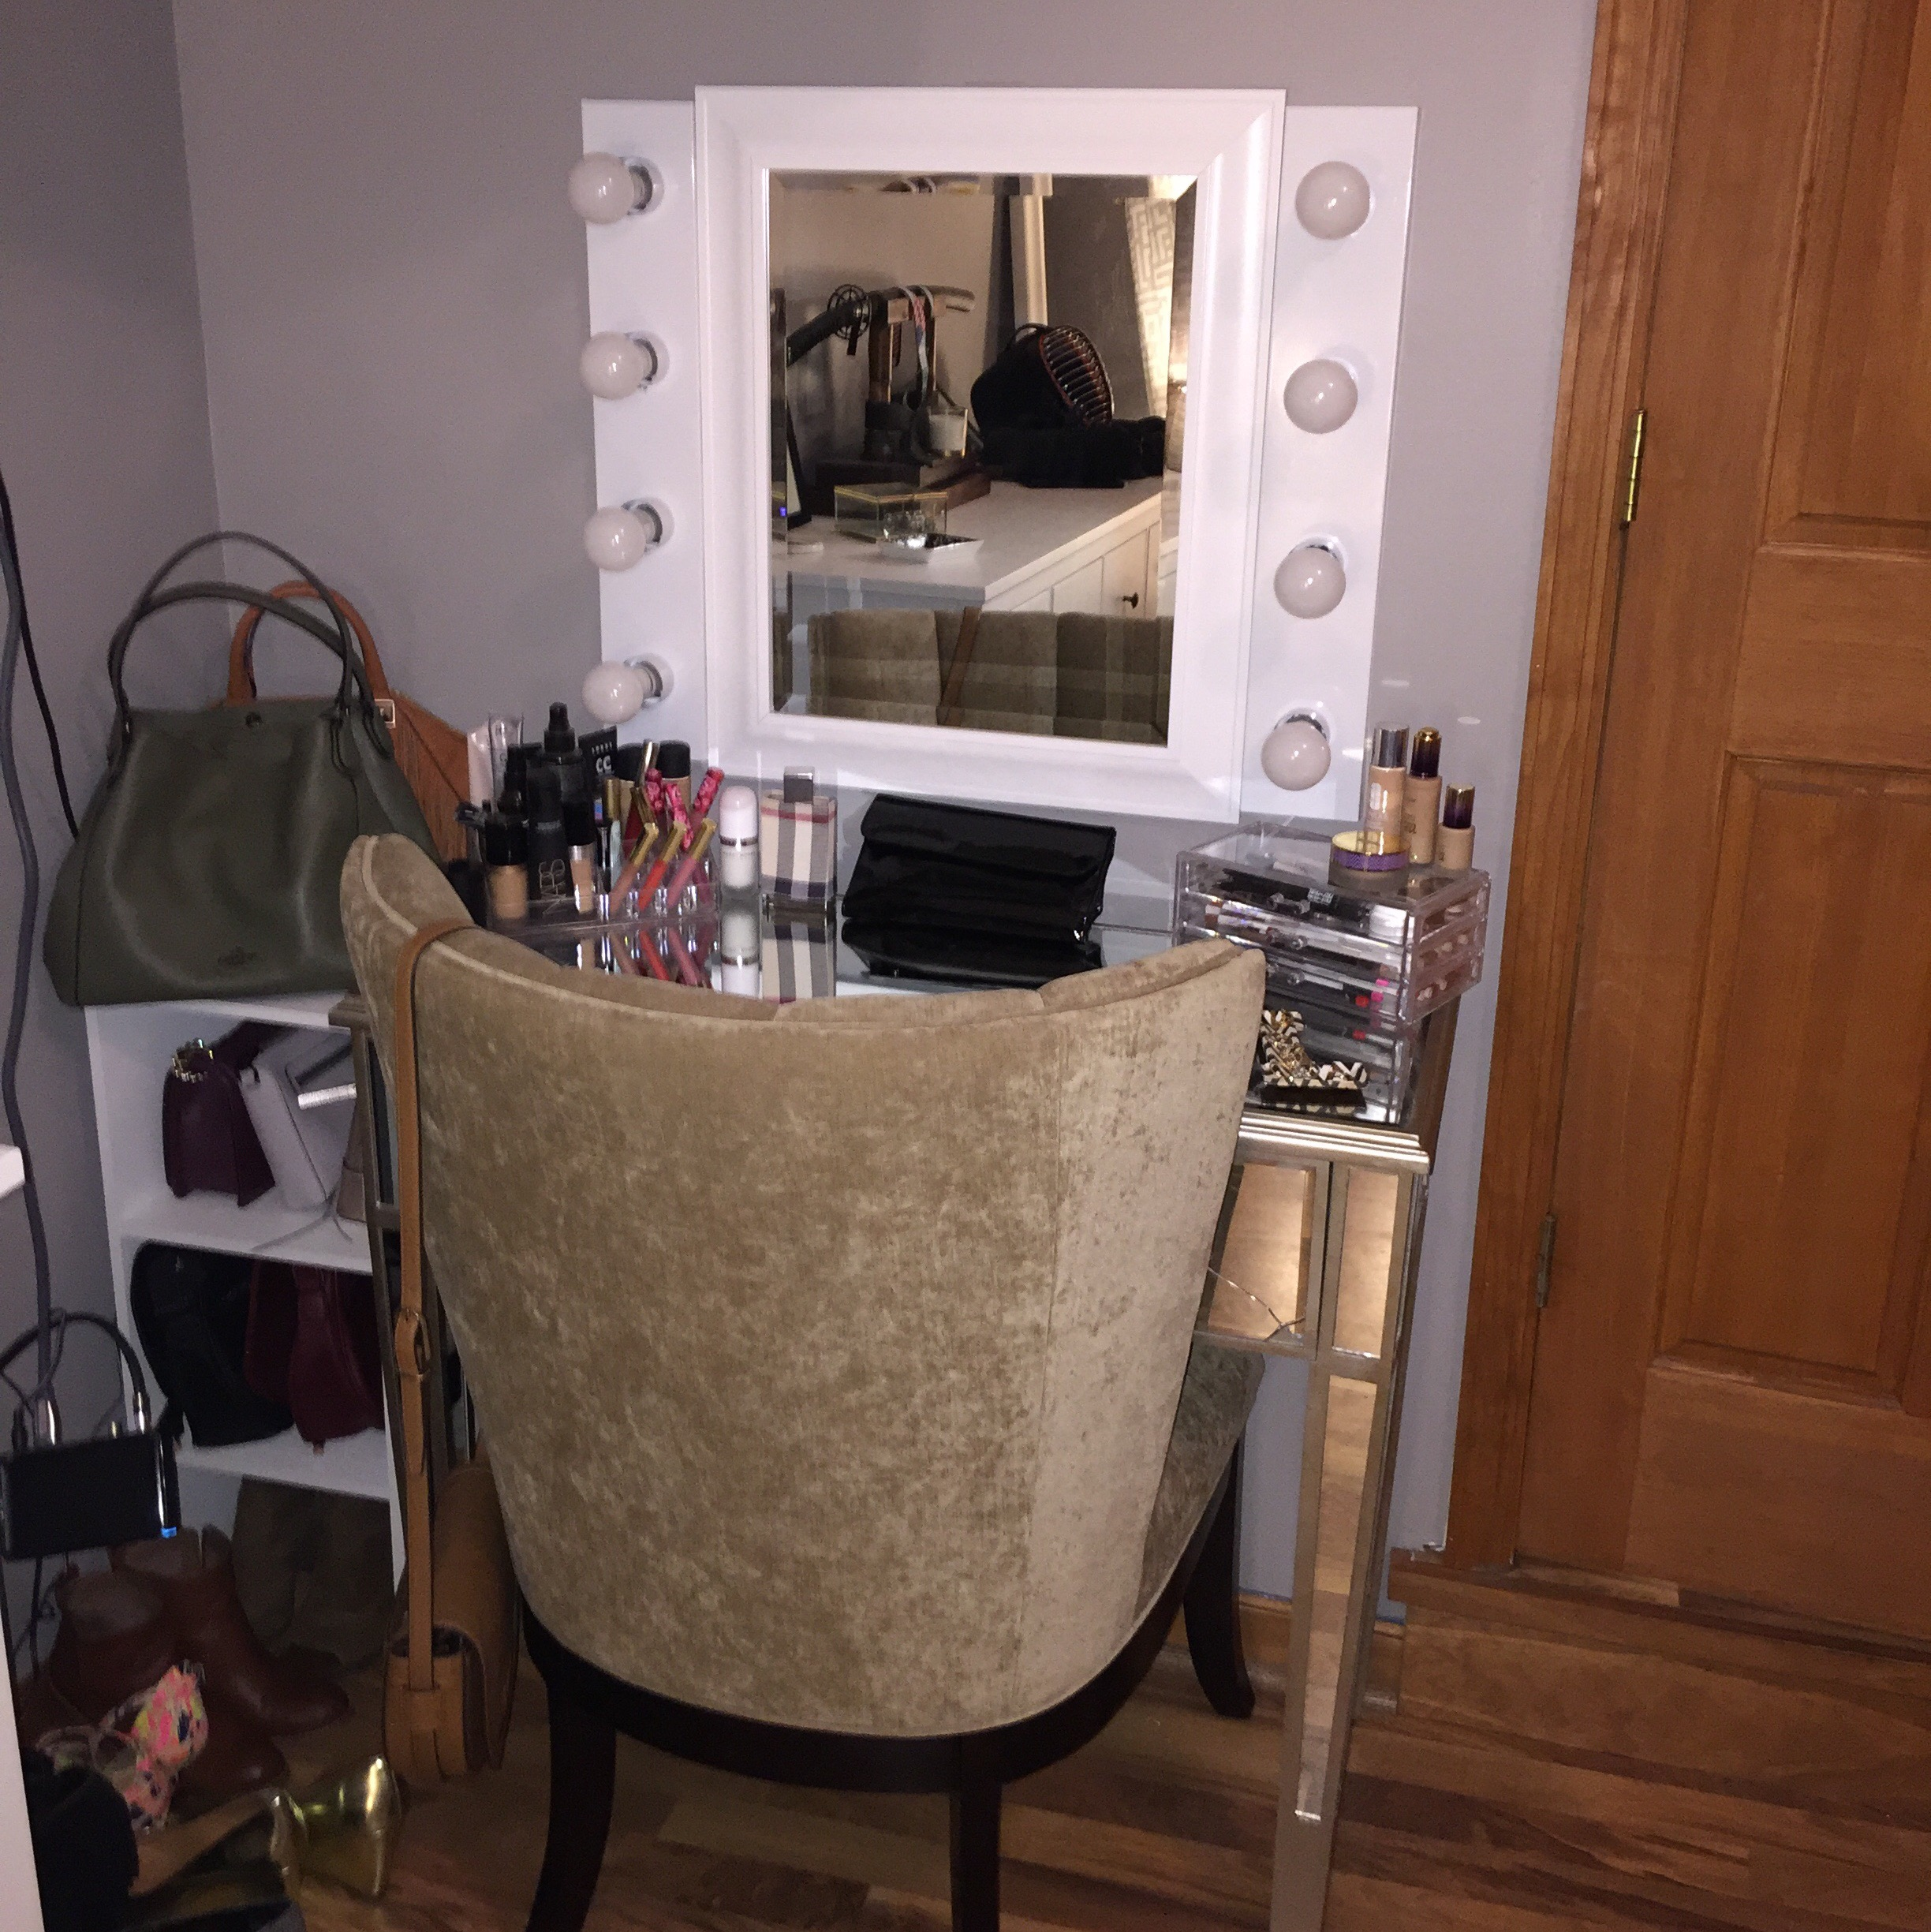 My Mirrored Vanity Table, Five Drawer Chest And Mirror Came From Home Goods.  The Table Was $60 On Clearance, The Drawer Set Was $90 (both From Home Goods)  ...